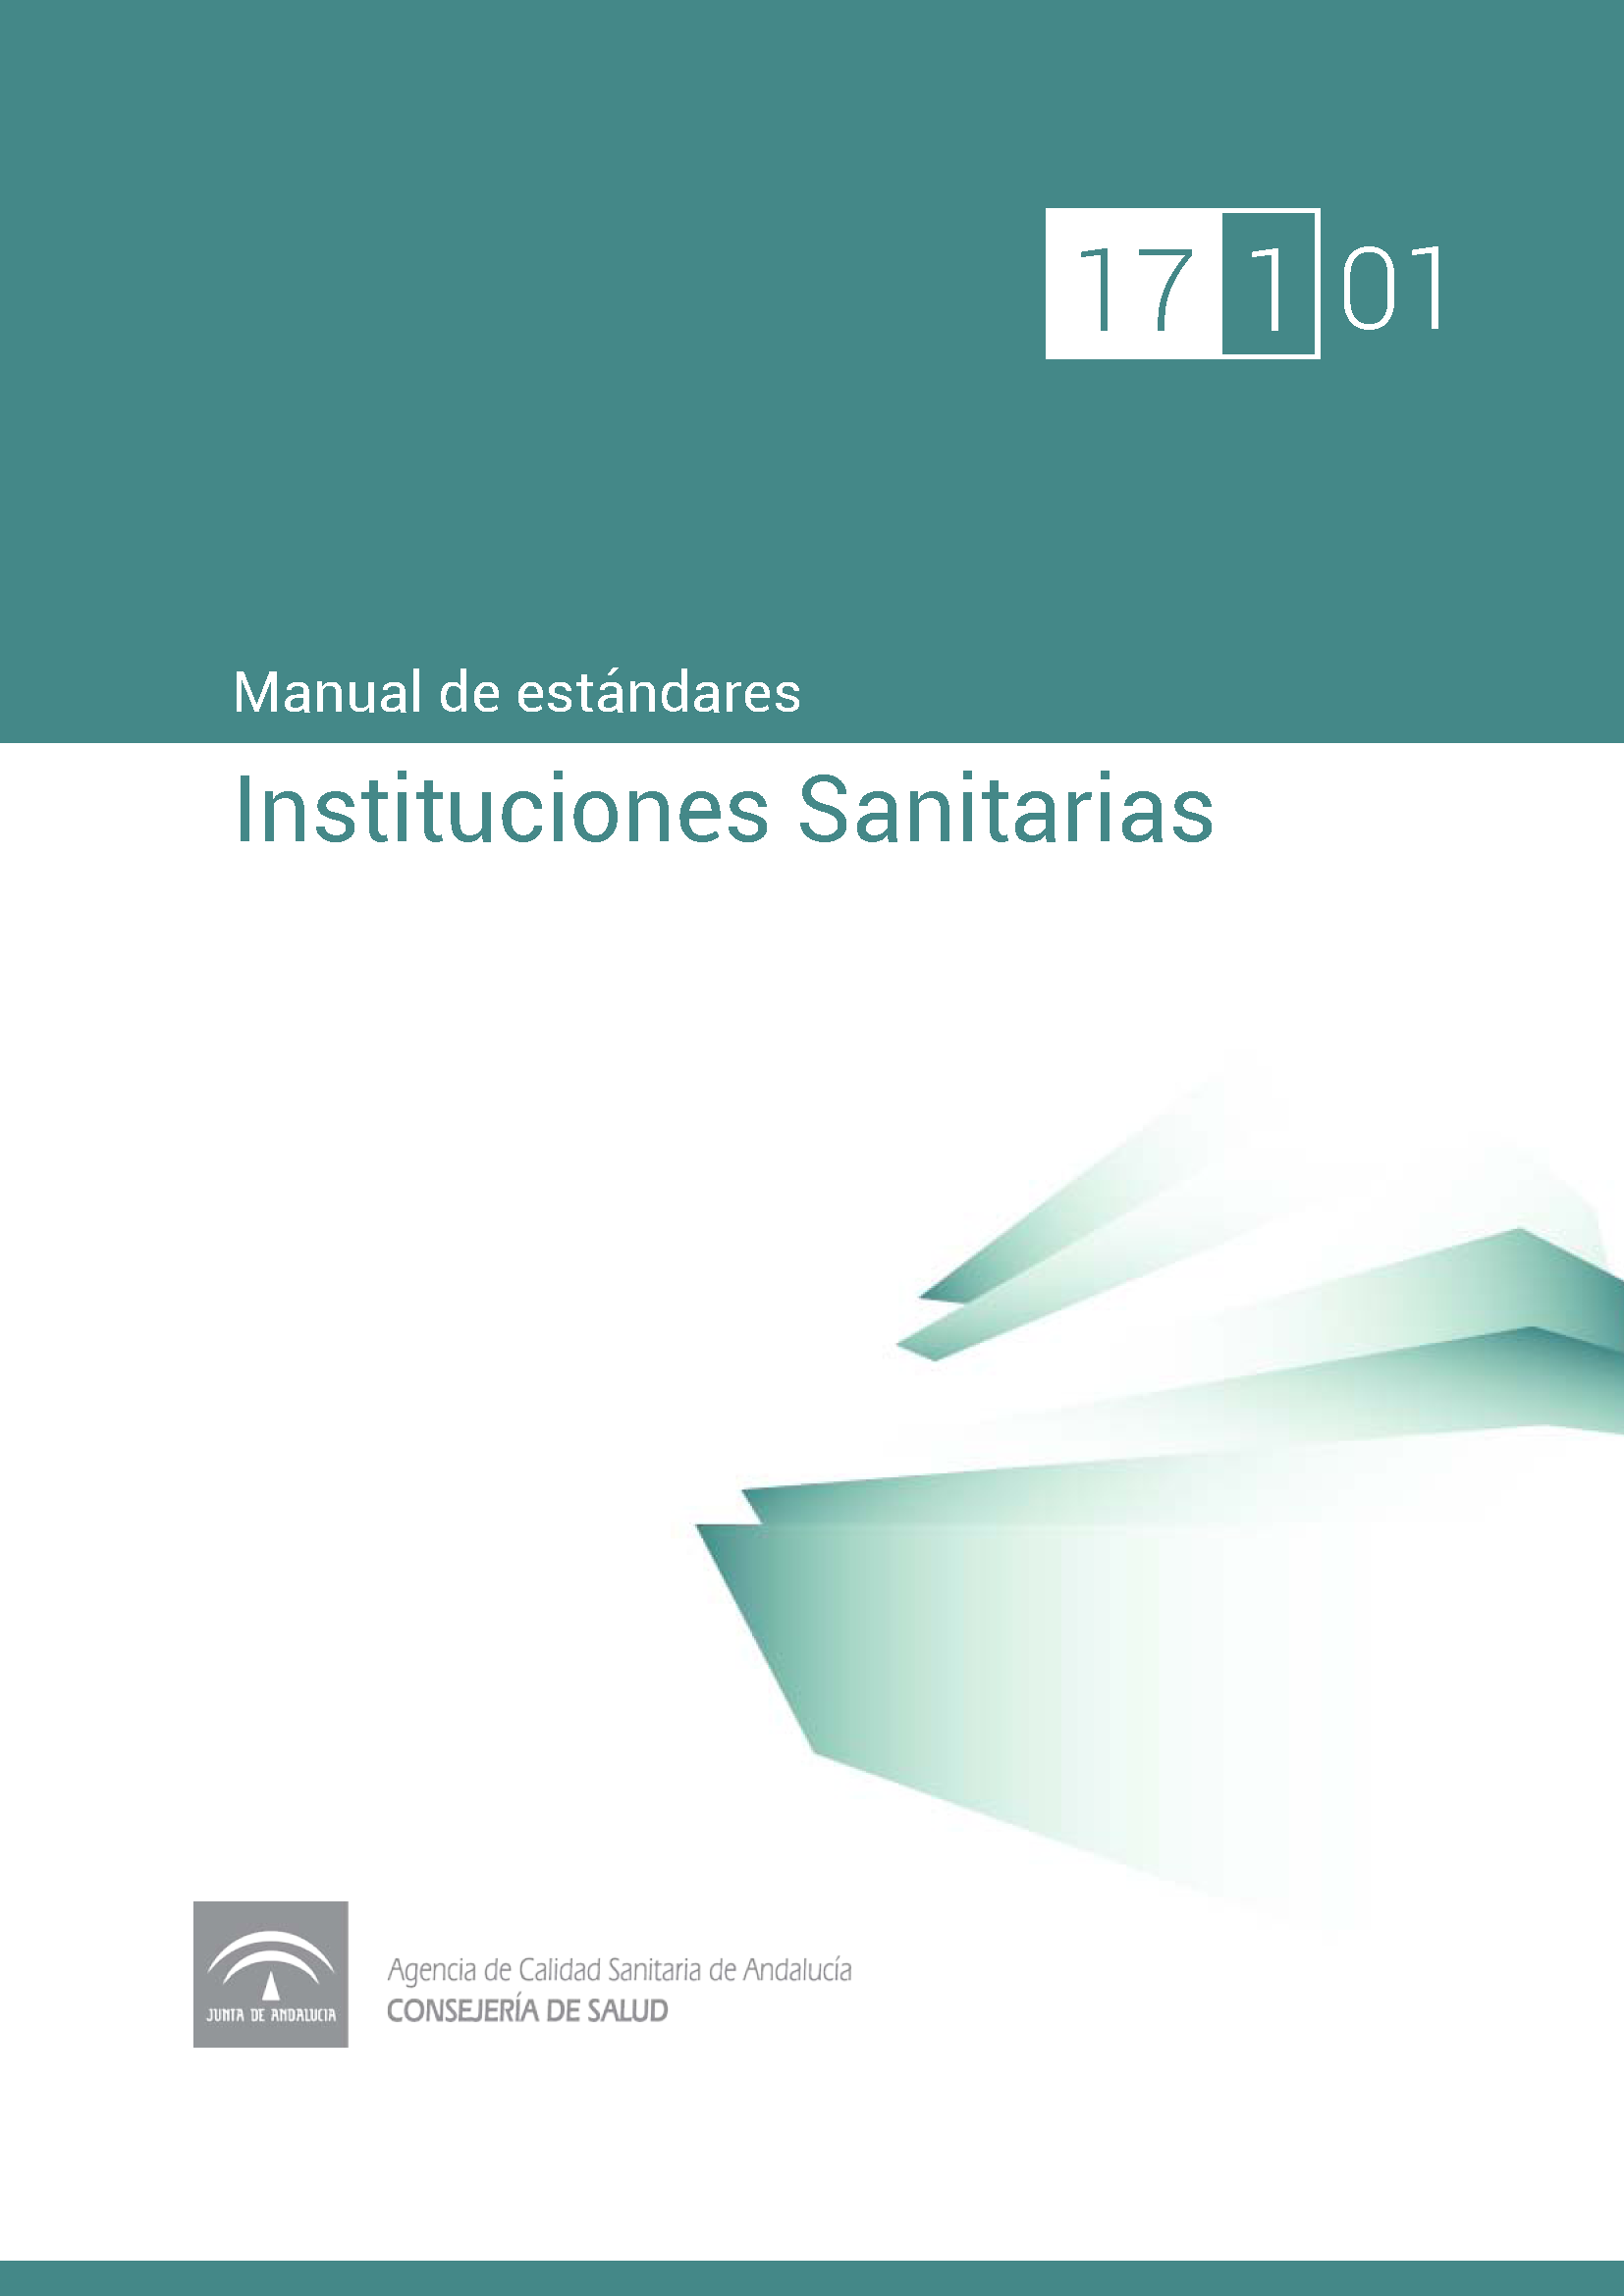 Portada manual de instituciones sanitarias